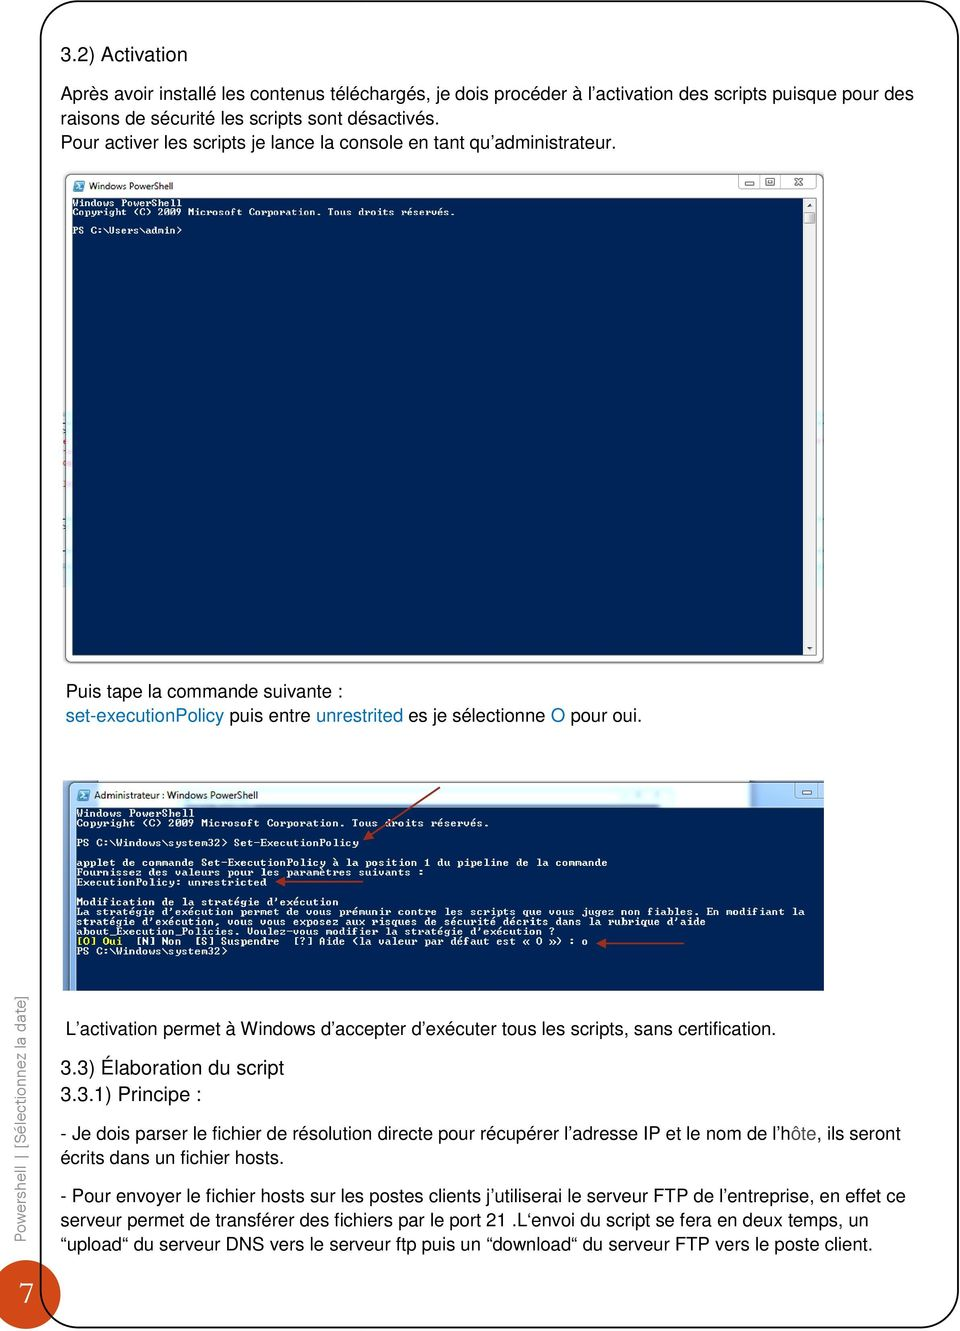 7 L activation permet à Windows d accepter d exécuter tous les scripts, sans certification. 3.